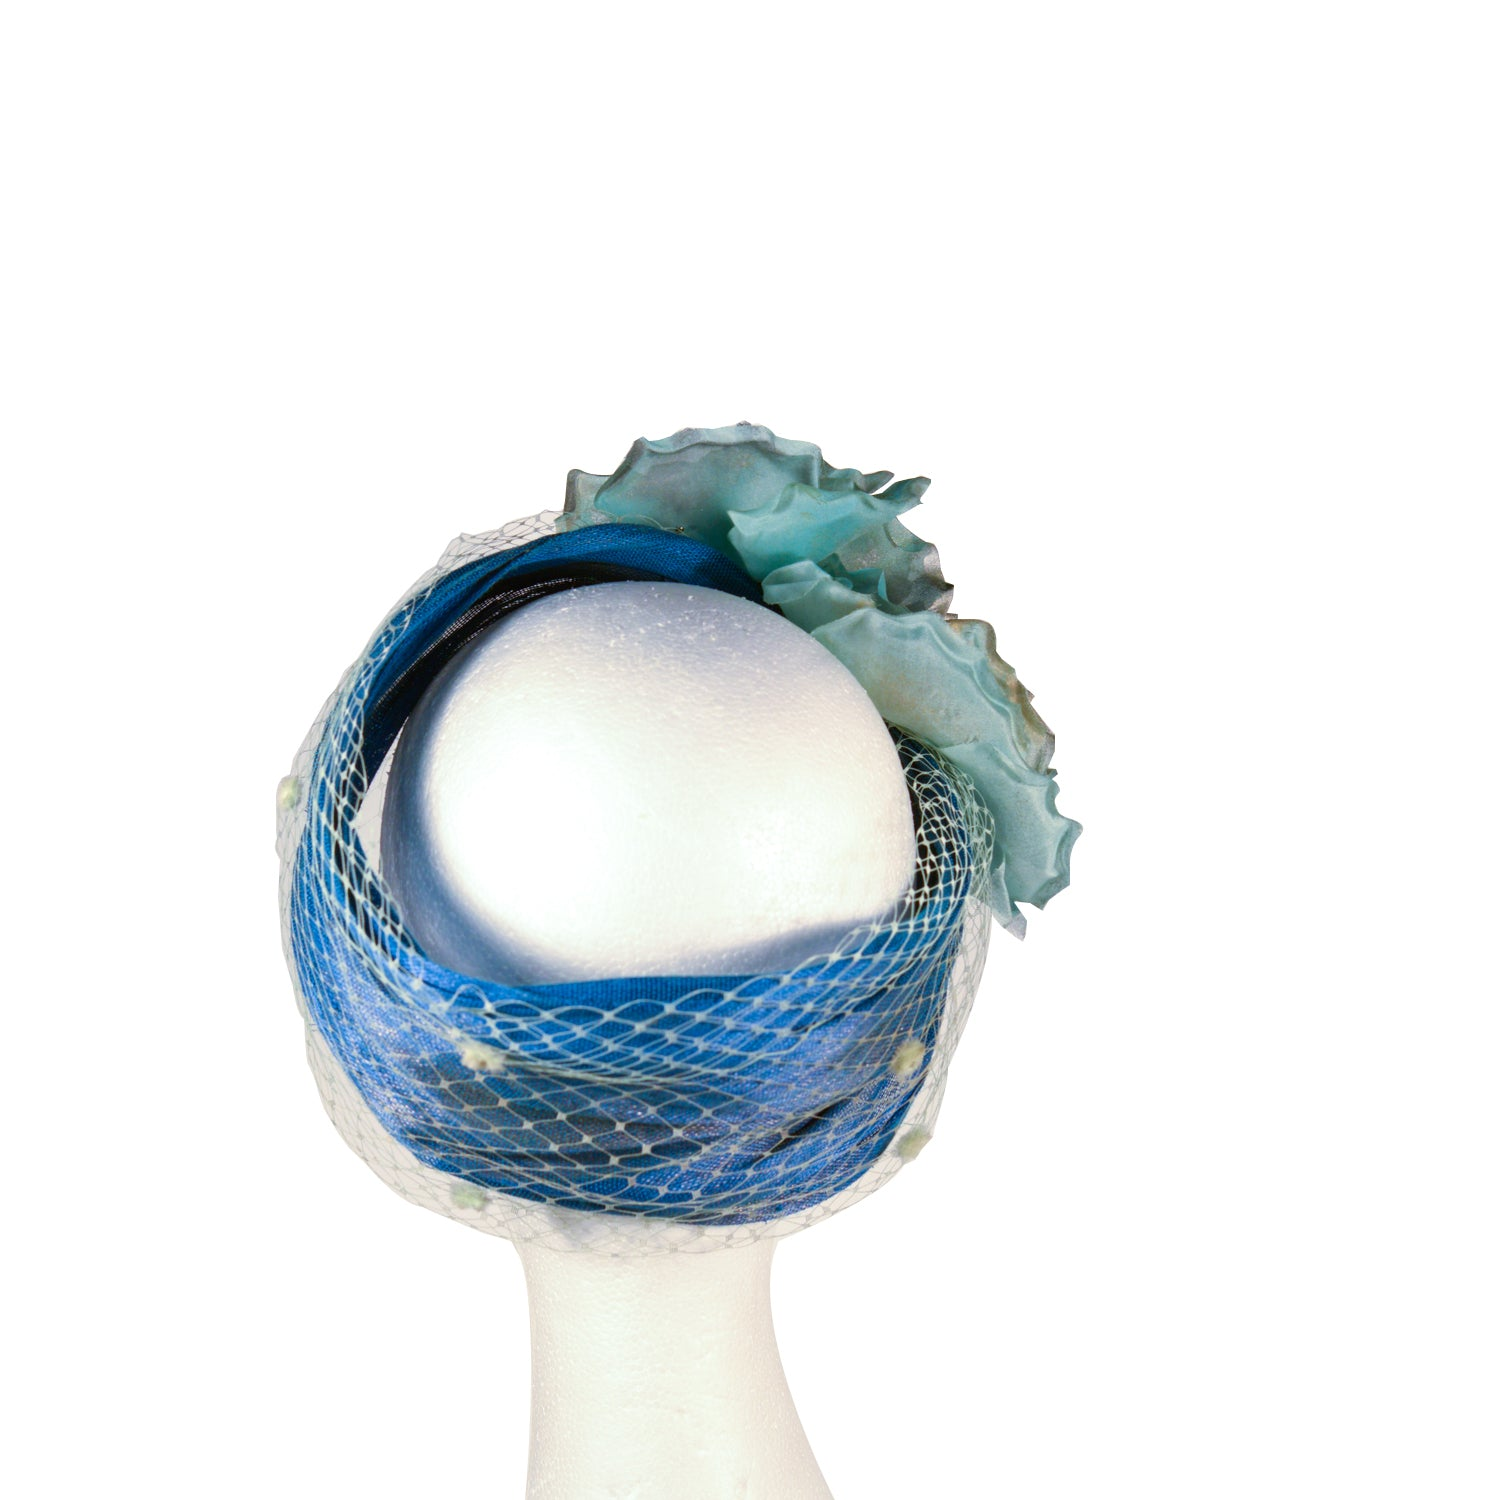 Blue floral turban style bespoke by Julie Perlouze Paris